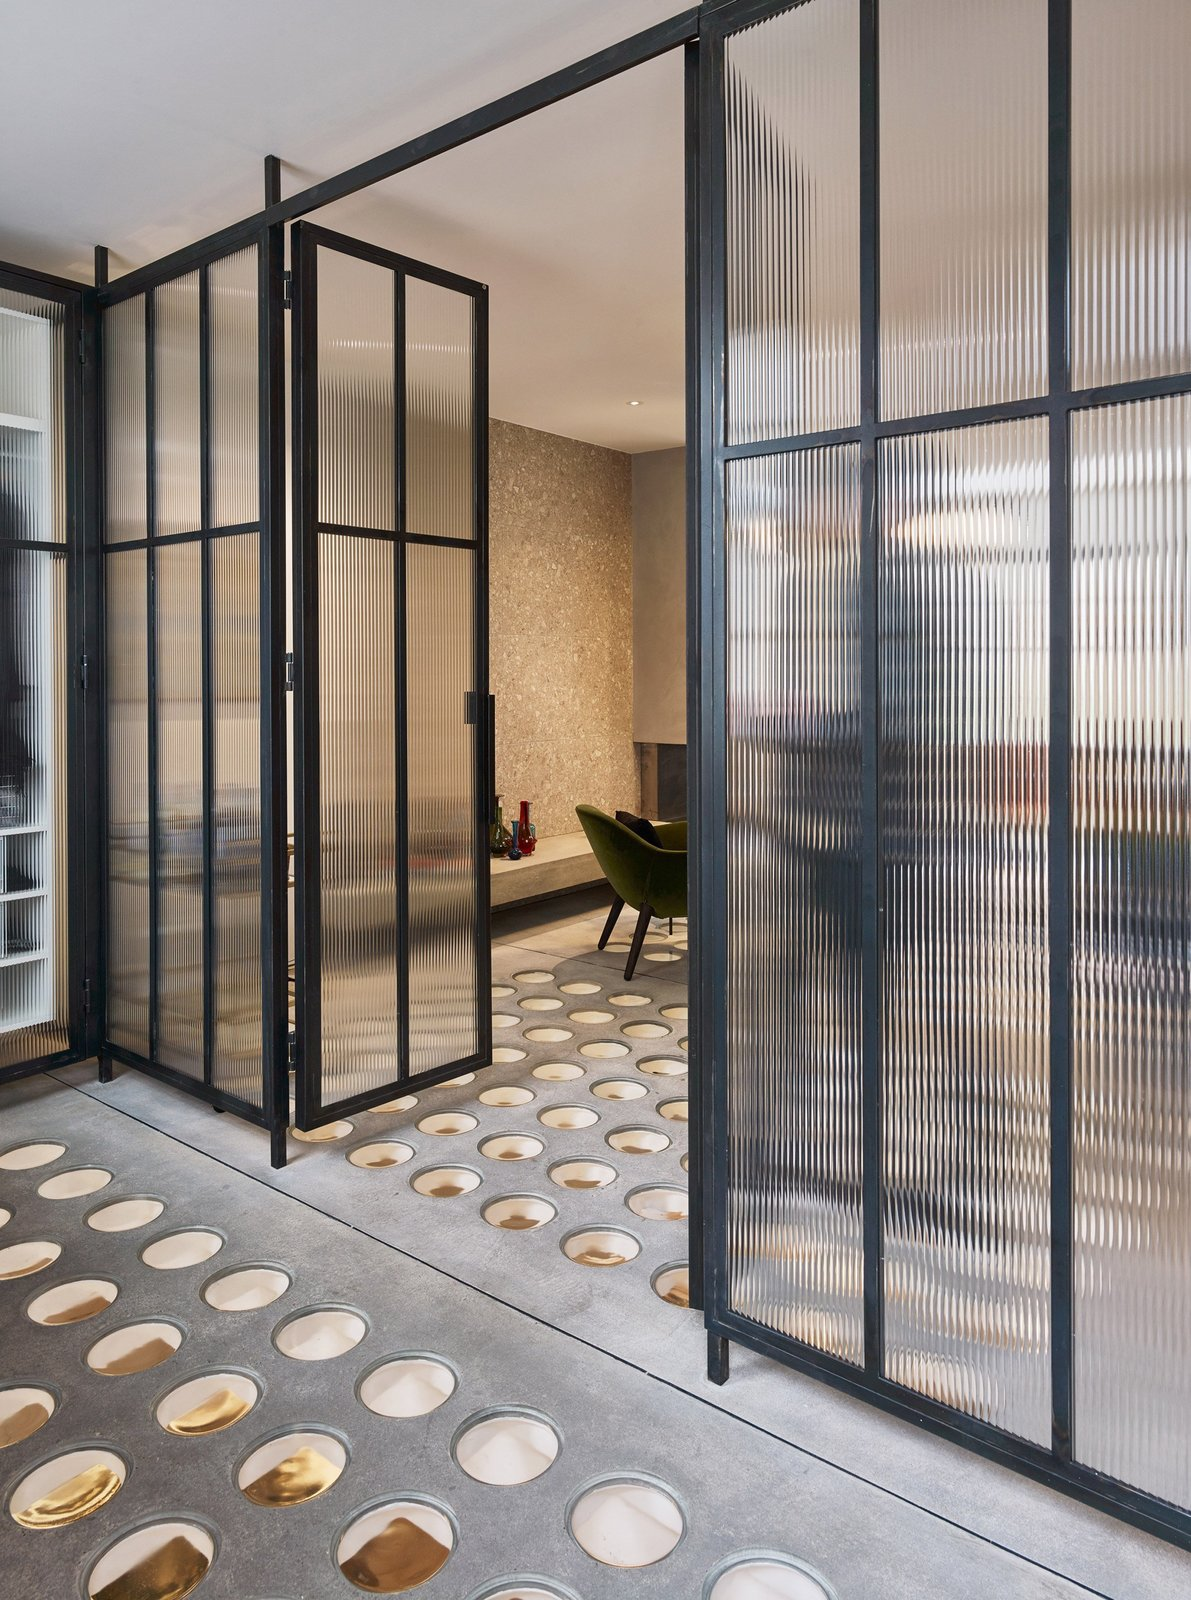 Transparent Perforated Circles Bring Light and Movement to This London Terrace House - Photo 9 of 12